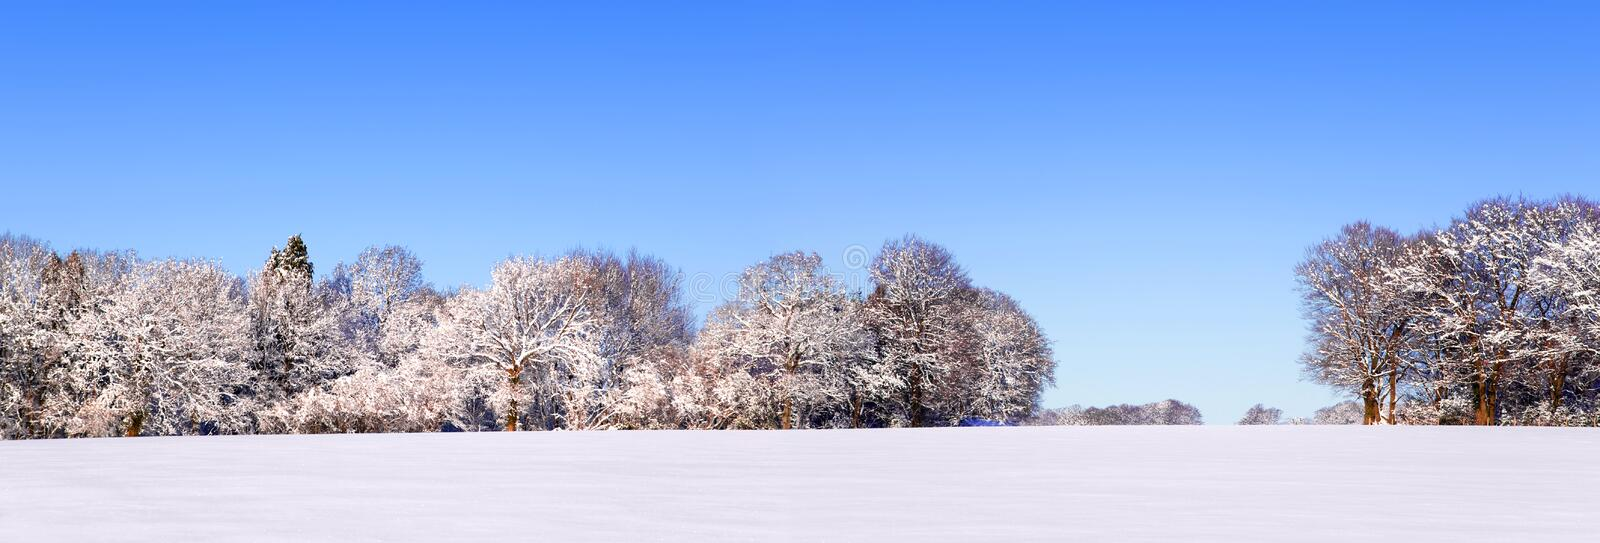 Snow panoramic landscape royalty free stock image